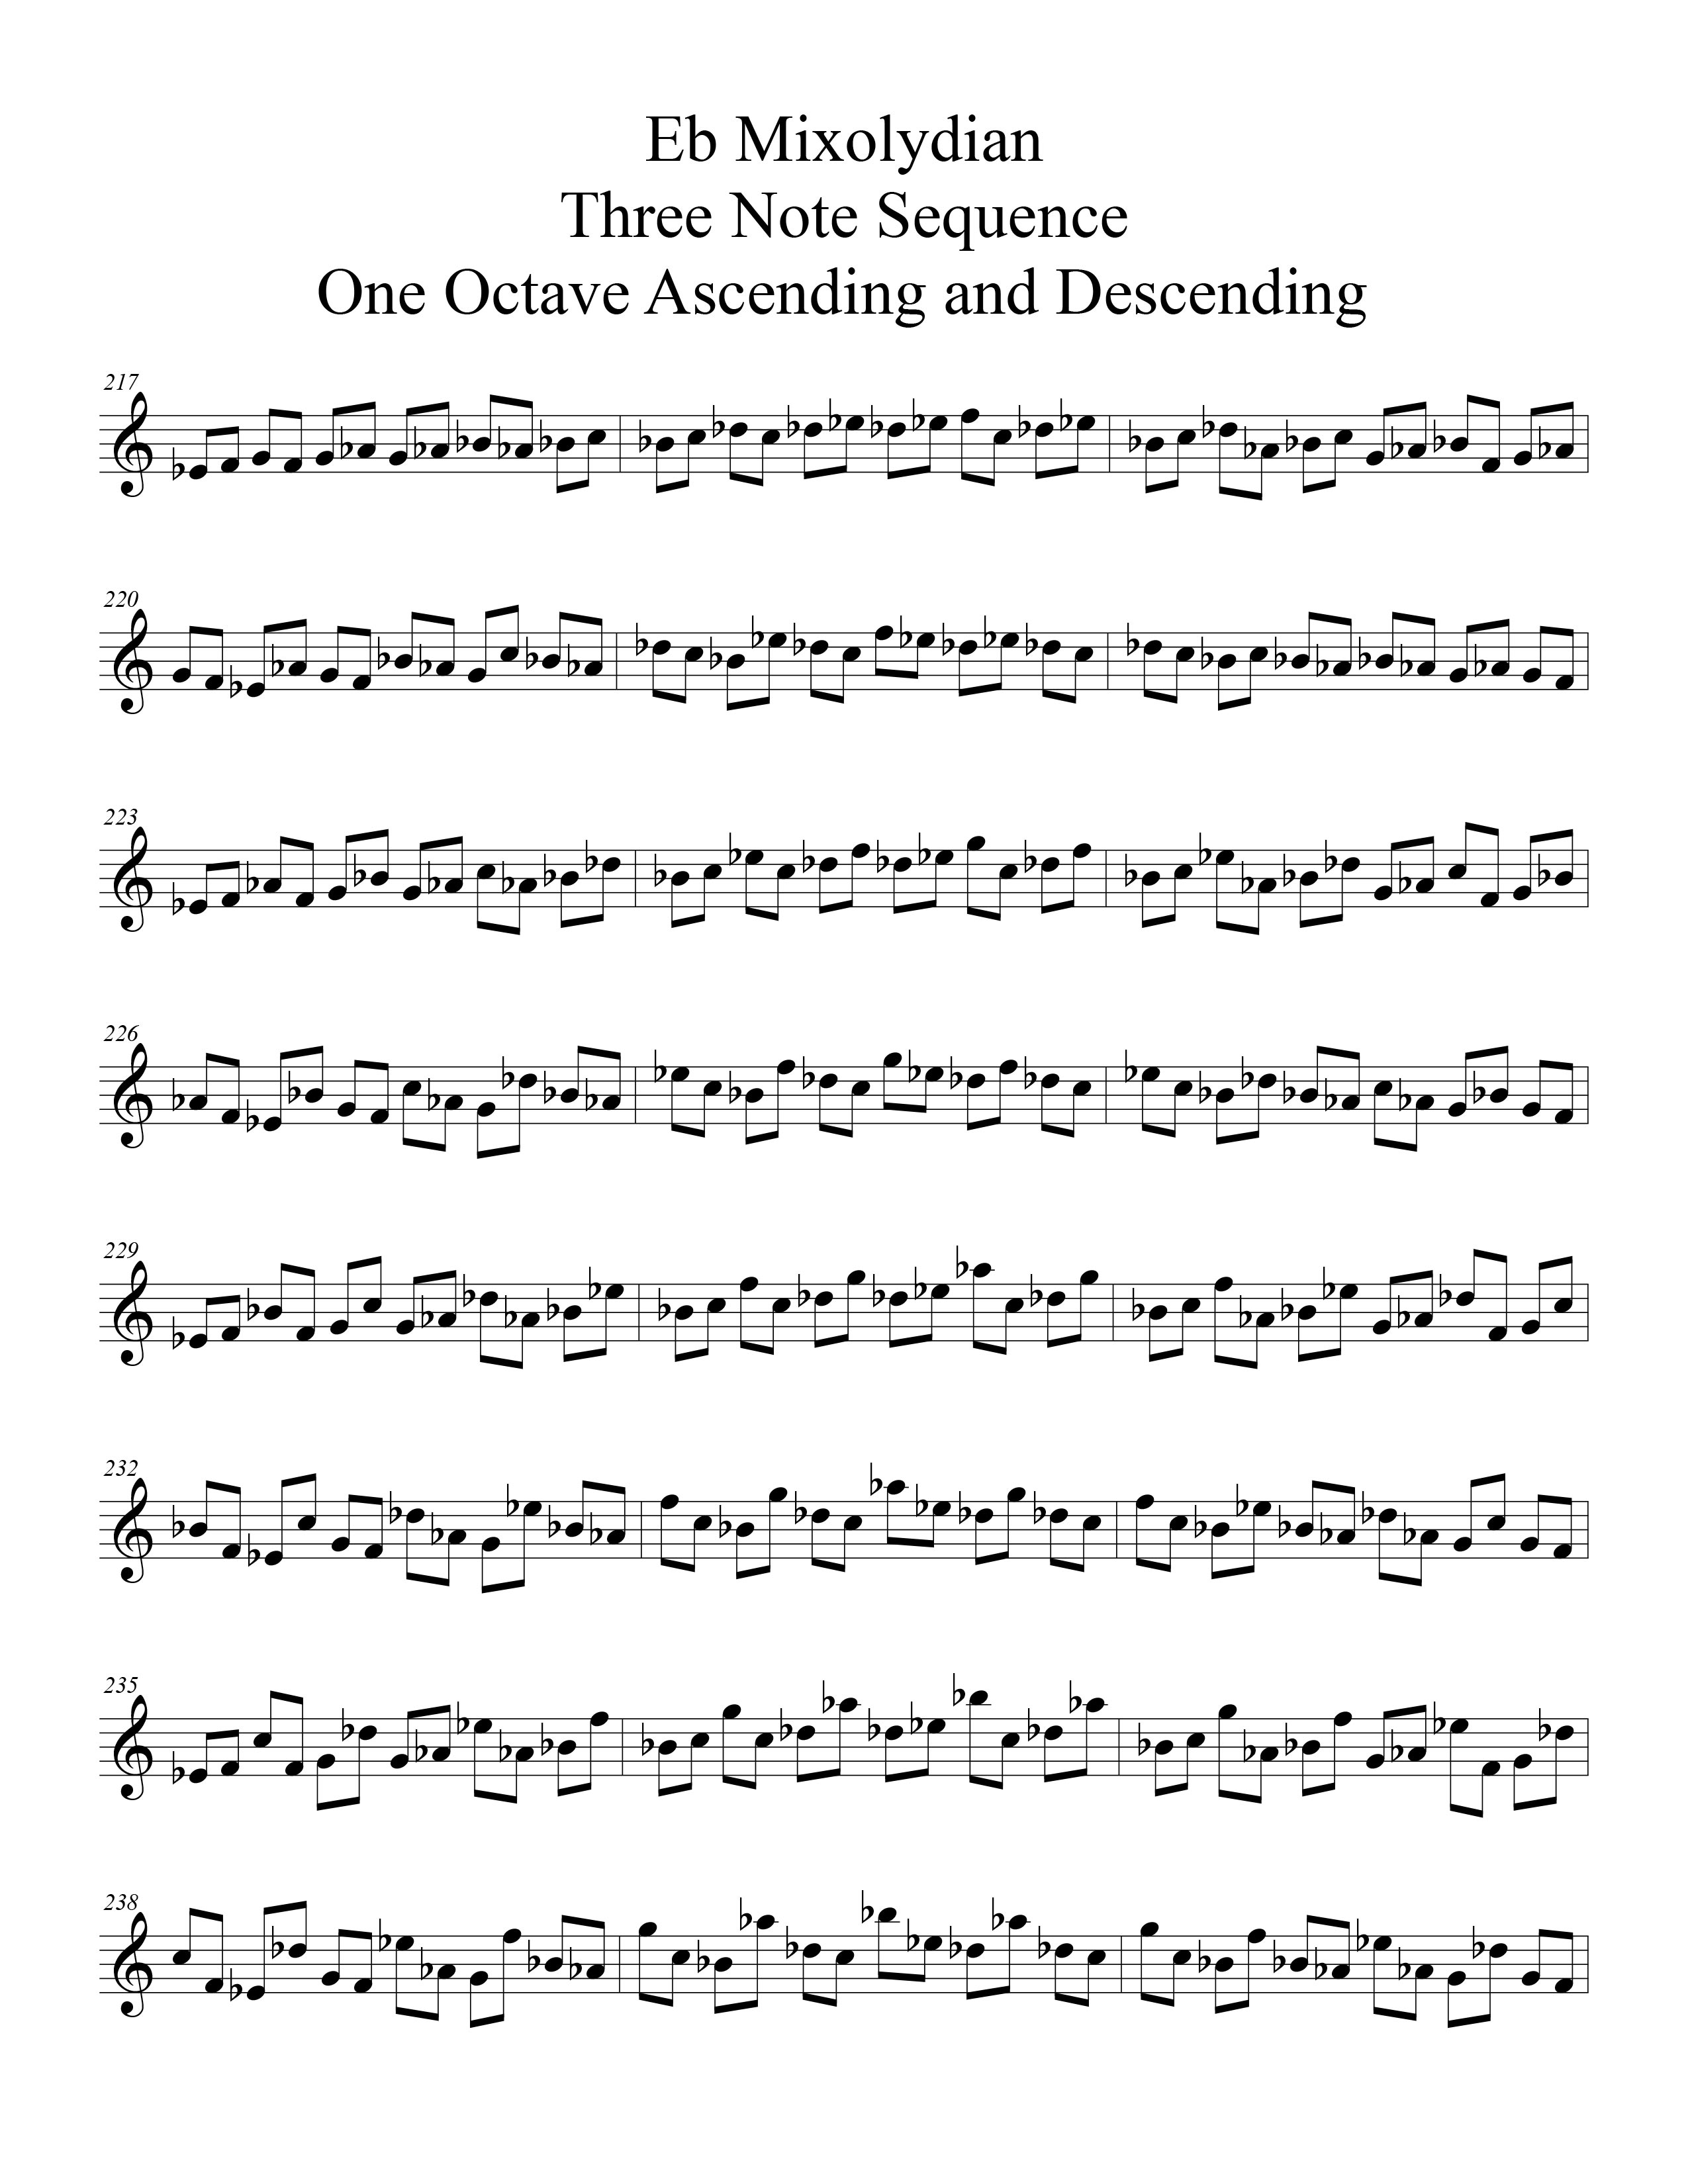 Eb Mixolydian Modal Sequencing 3 Note One_Octave Ascending and Descending Modal Sequencing 3 Note Group 1 for all instrumentalist by Bruce Arnold for Muse Eek Publishing Company